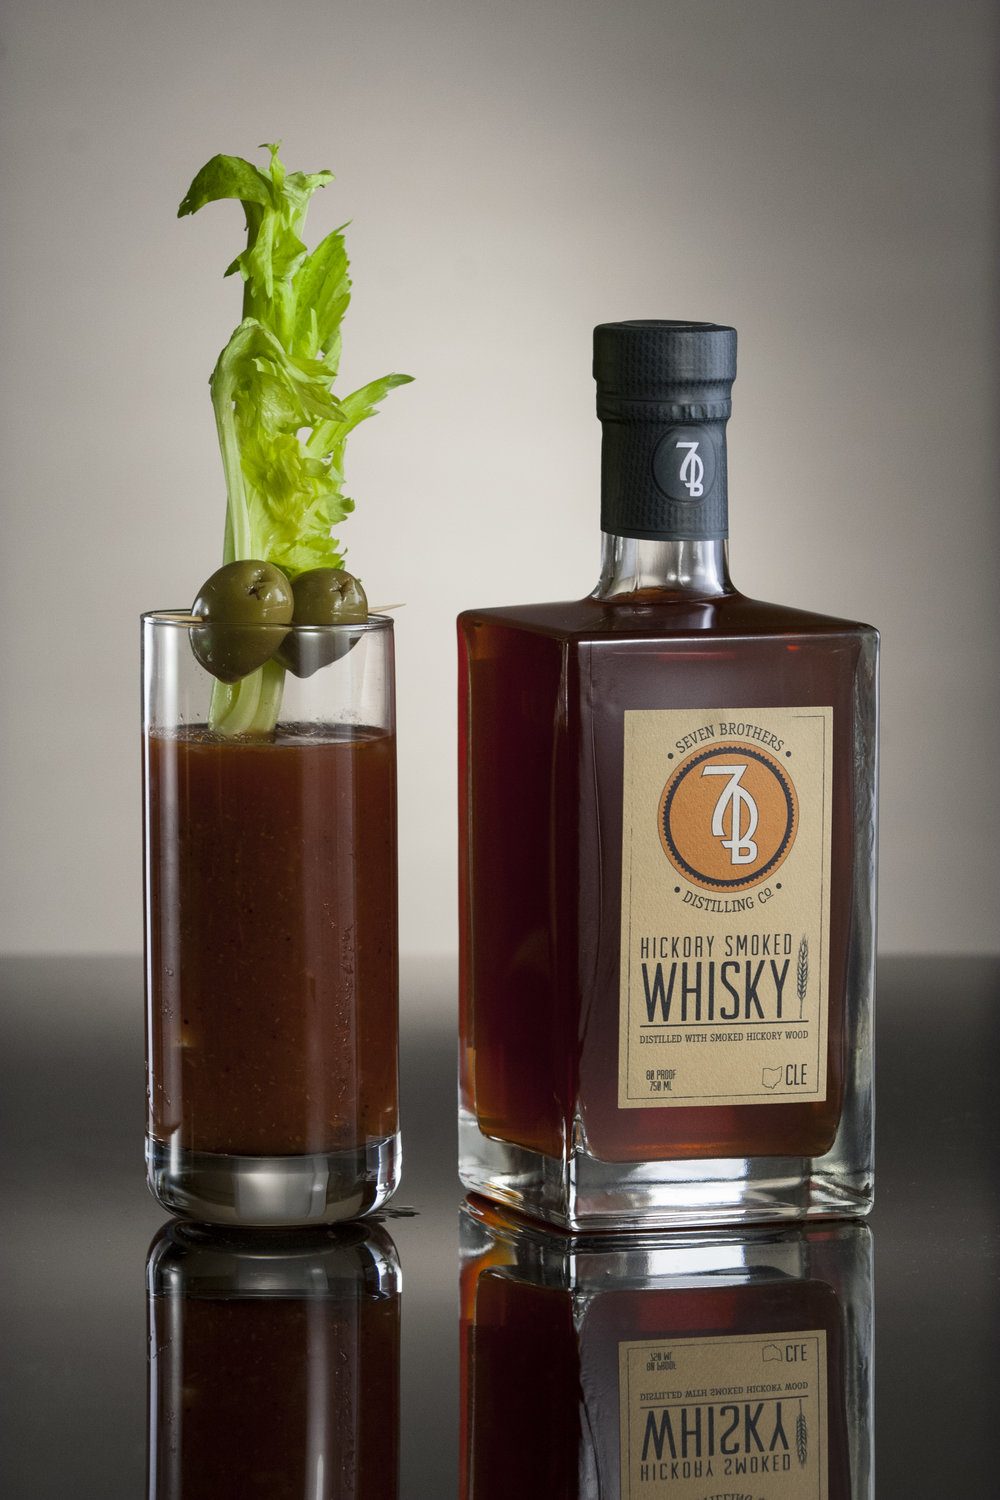 BROTHERS BLOODY MARY - 2 oz Seven Brothers Hickory Smoked Whisky4 oz Bloody Mary mix2 dash Tobasco sauce2 dash Worcestershire sauce.5 oz Lemon Juice1 pinch Black Pepper1 pinch SaltShake over ice, and strain into a Highball glass. Garnish with a celery stalk, lime wedge and olives.